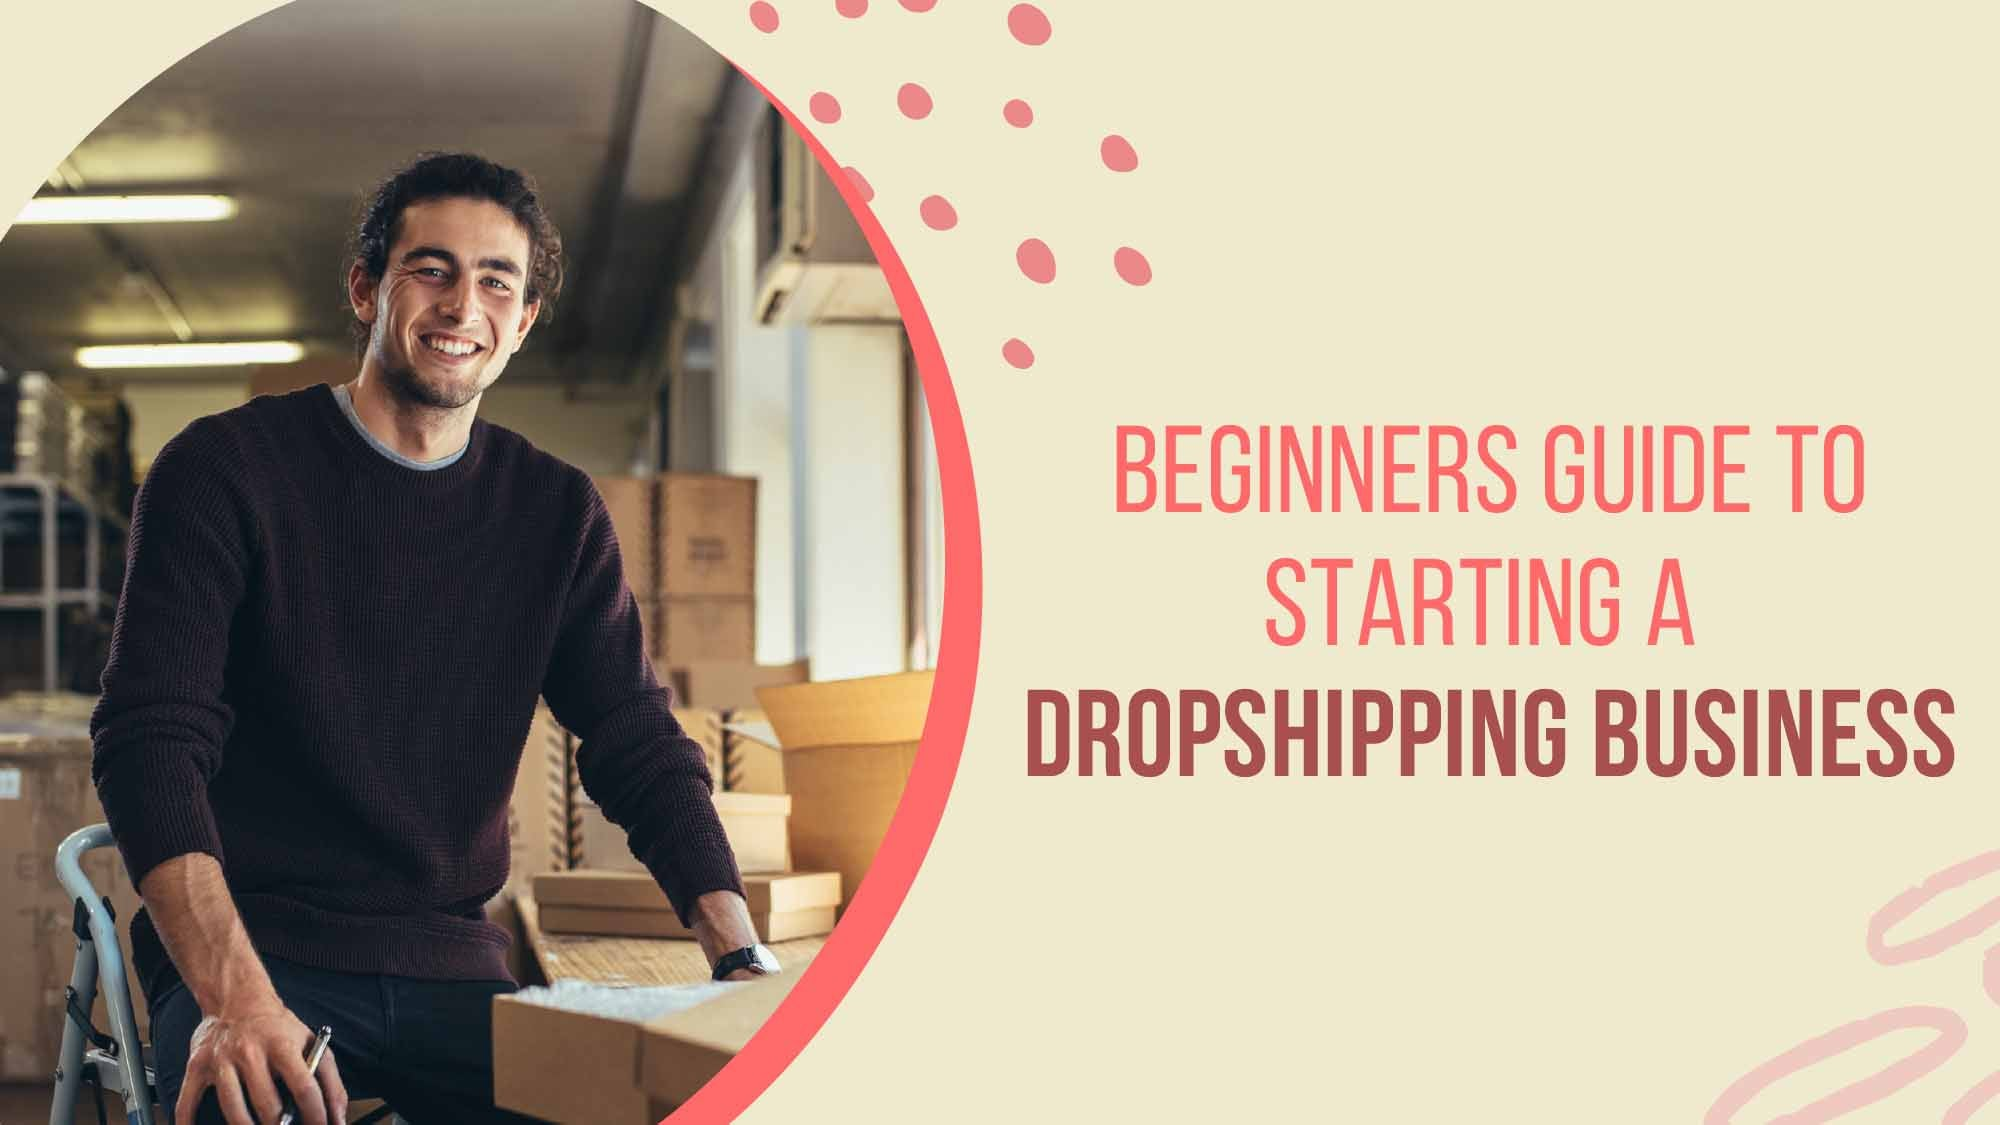 The Ultimate Beginners Guide To Starting A Dropshipping Business